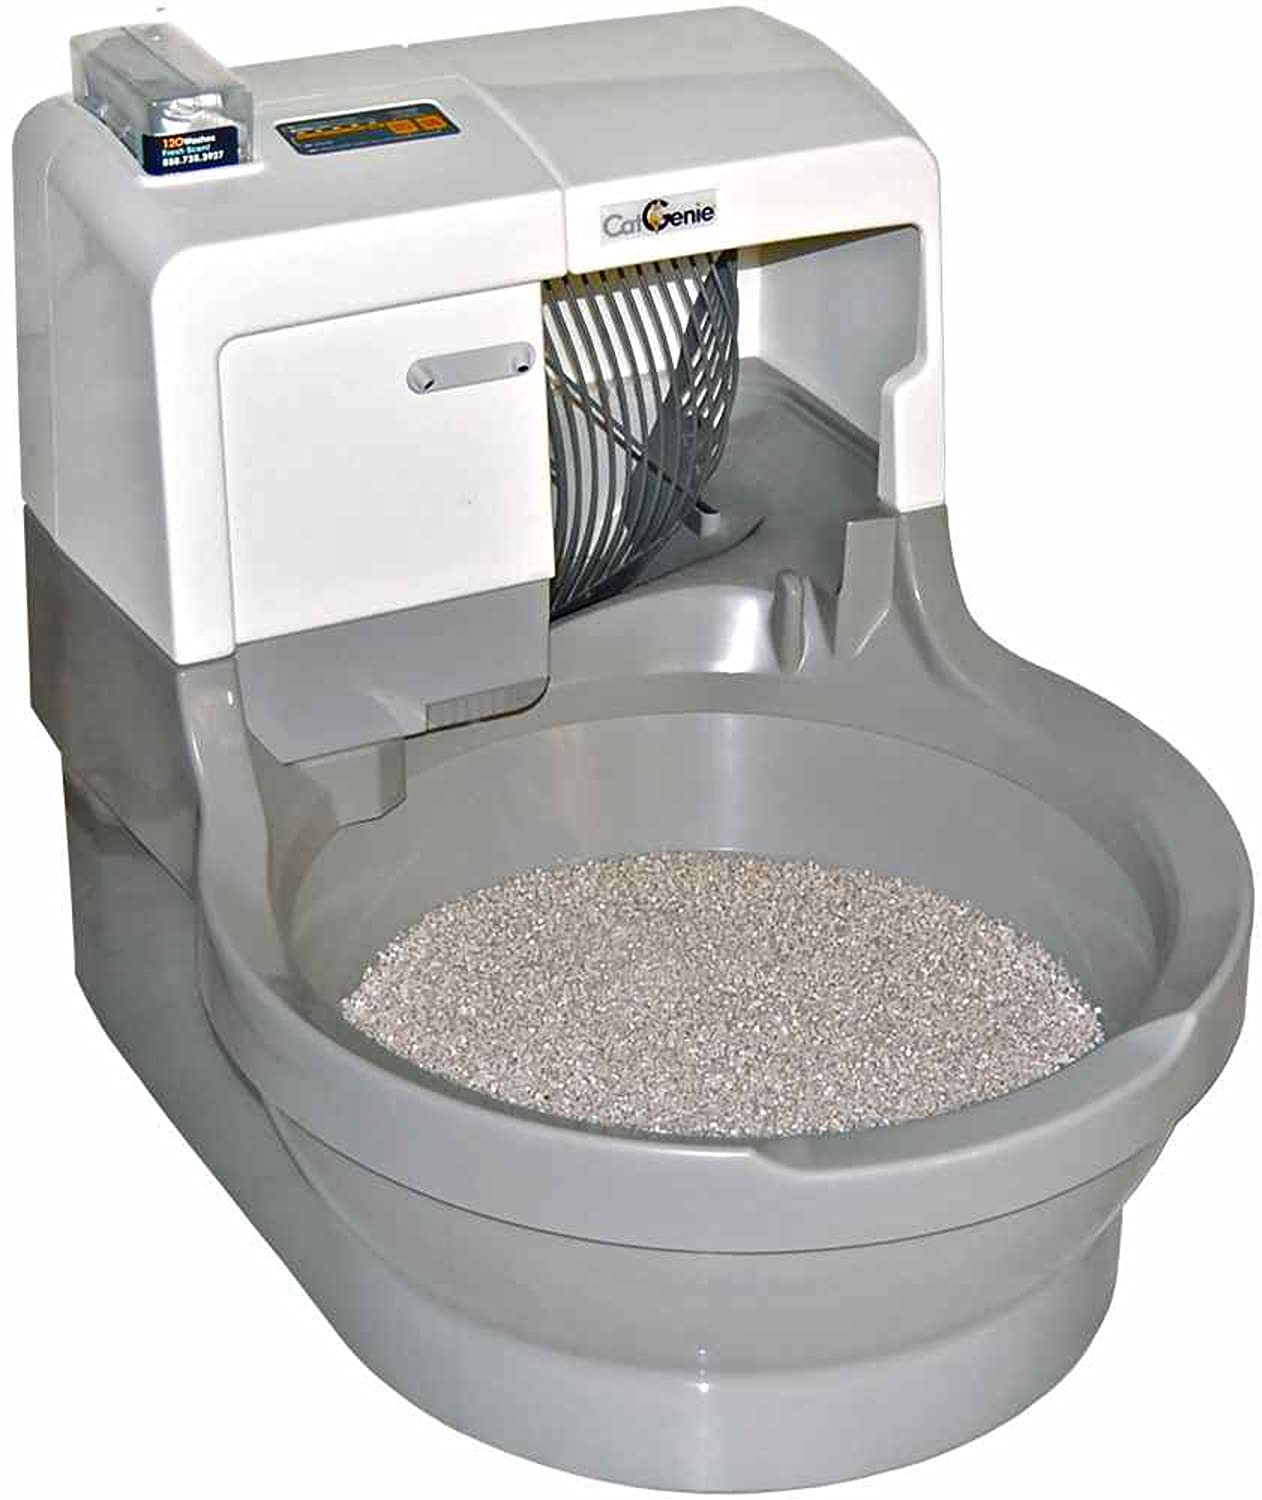 The Best Self Cleaning Litter Box 2